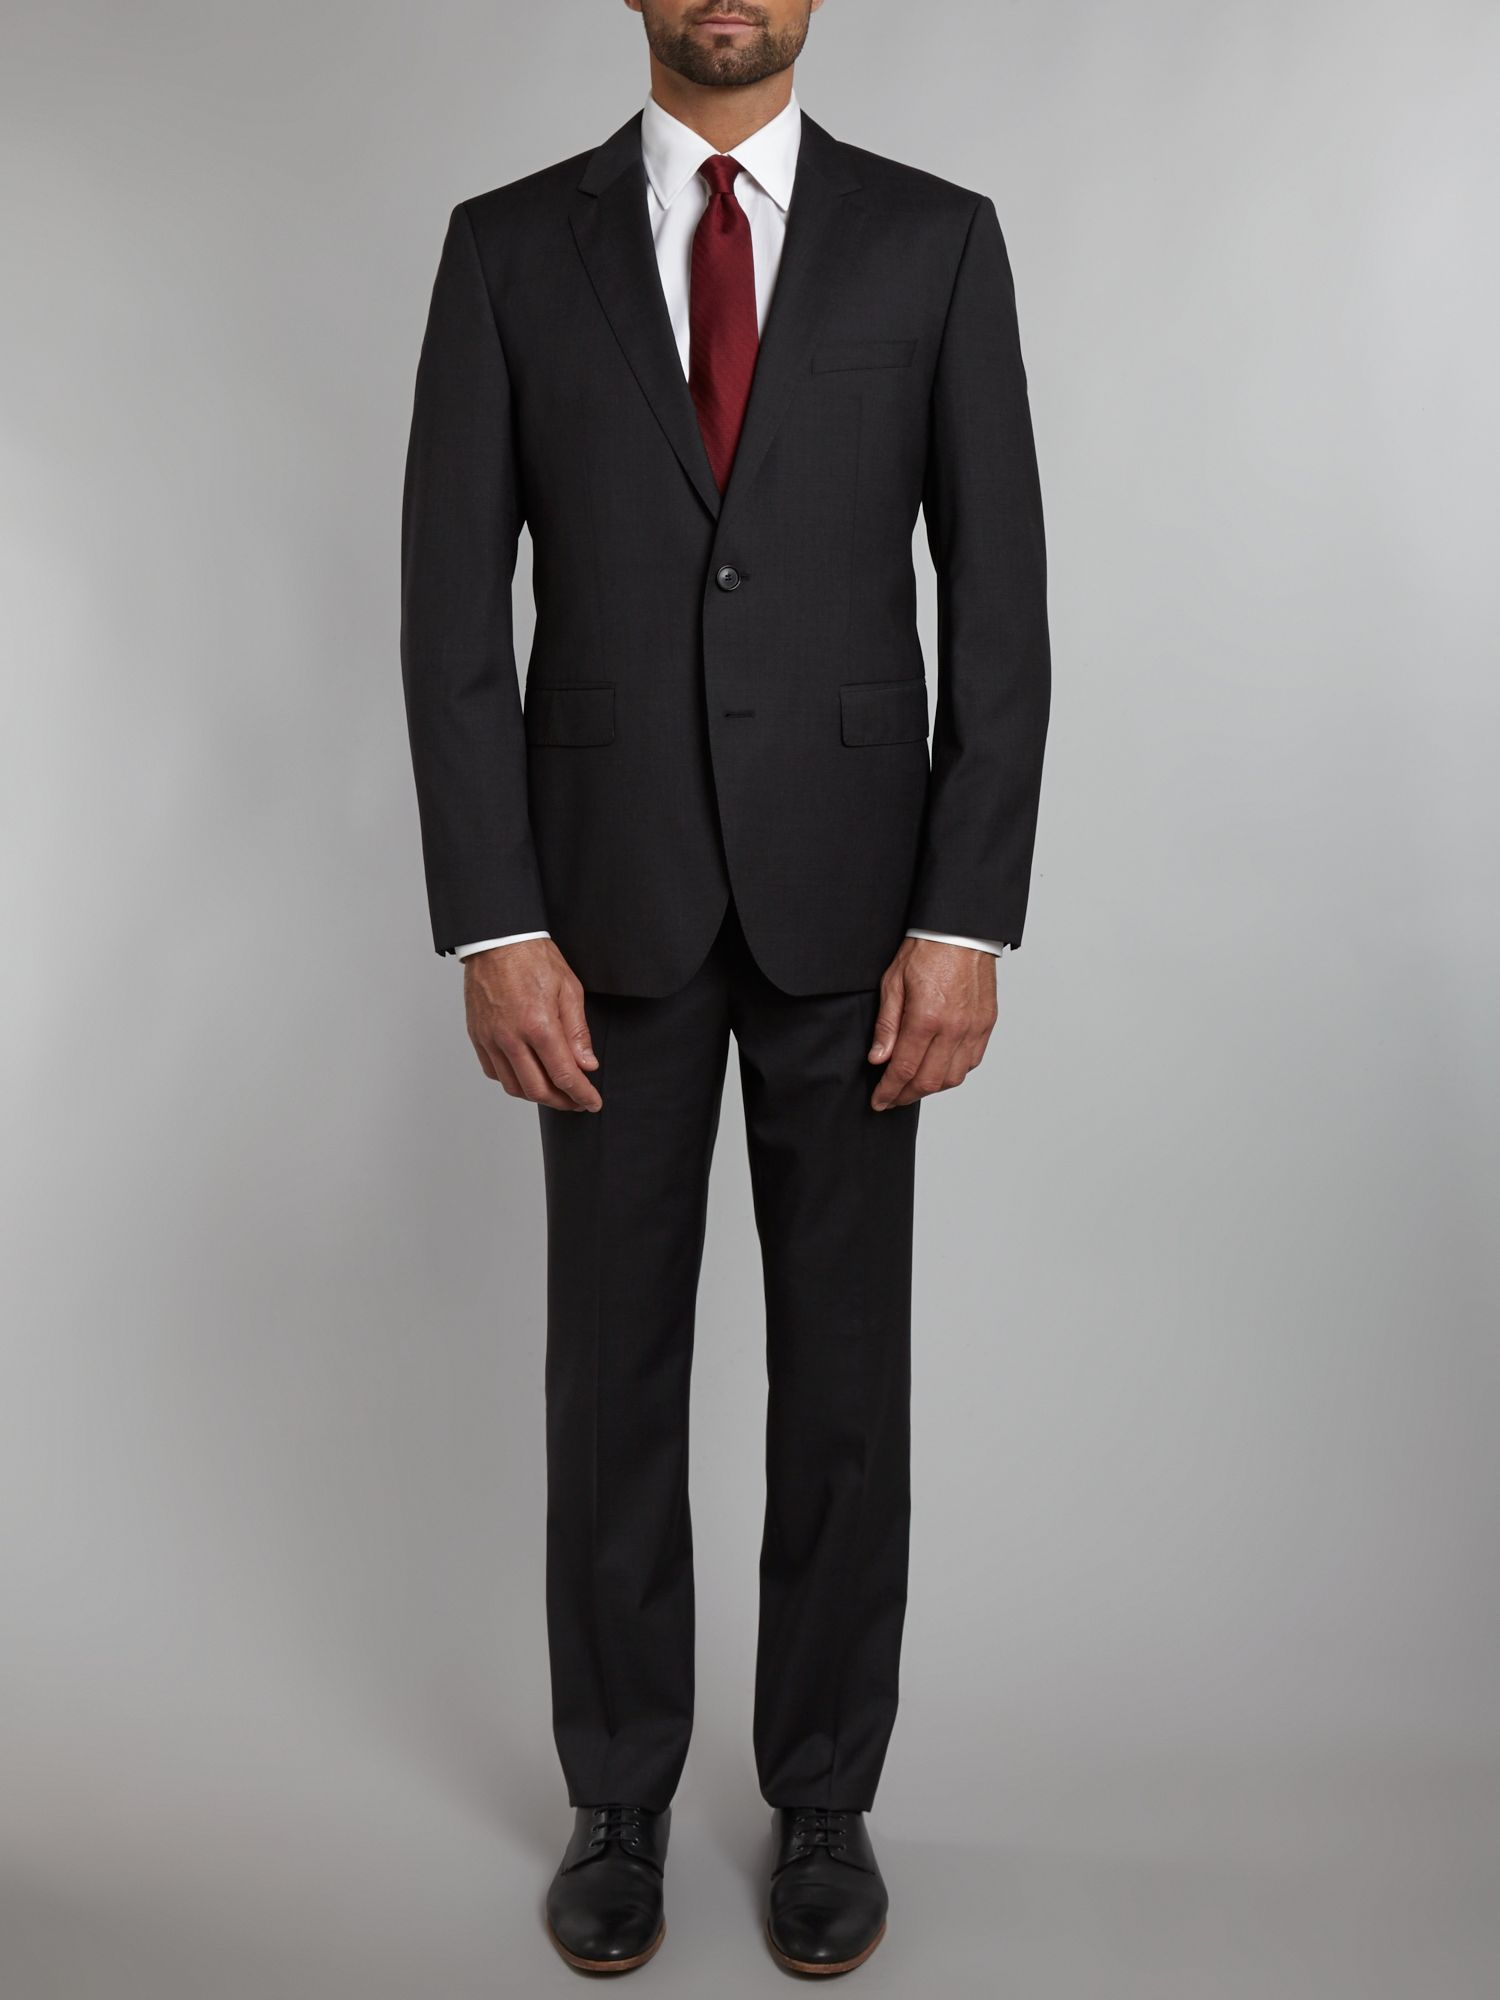 Rider/shout regular fit suit